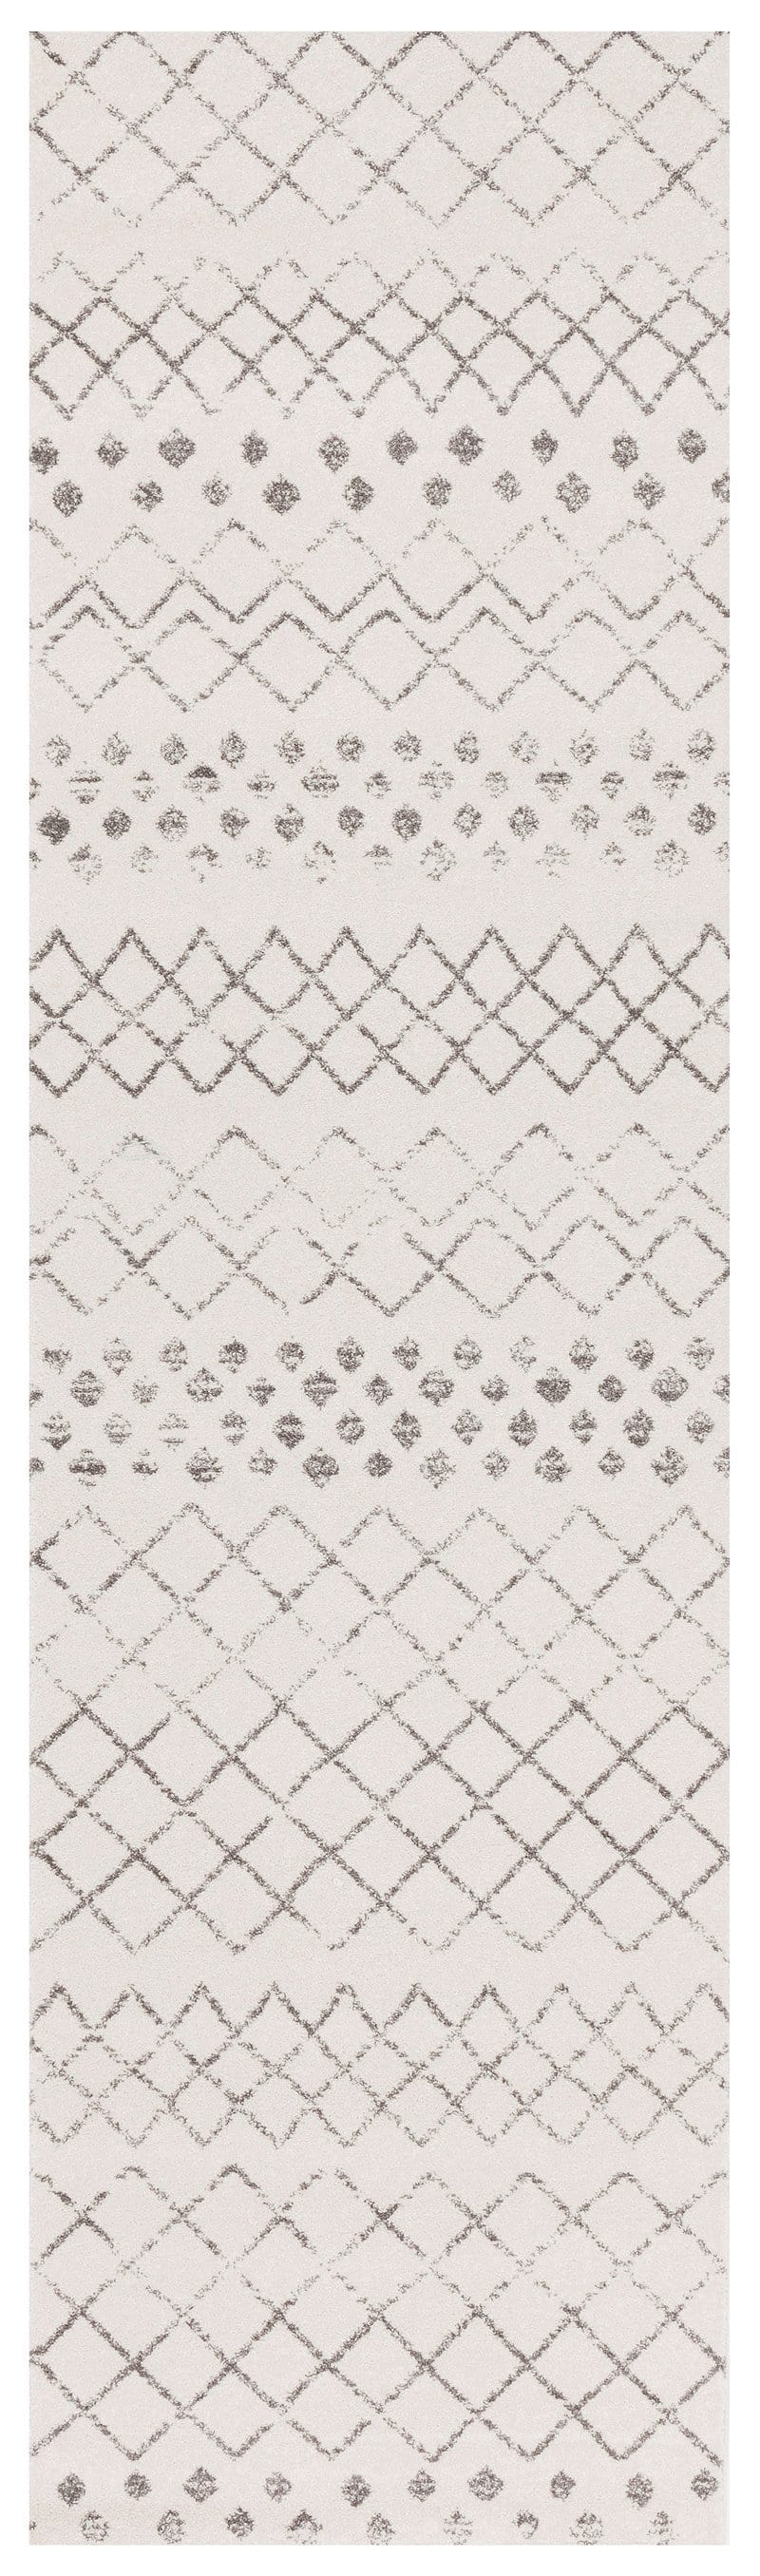 Toulon White & Dark Grey Diamond Pattern Runner Rug